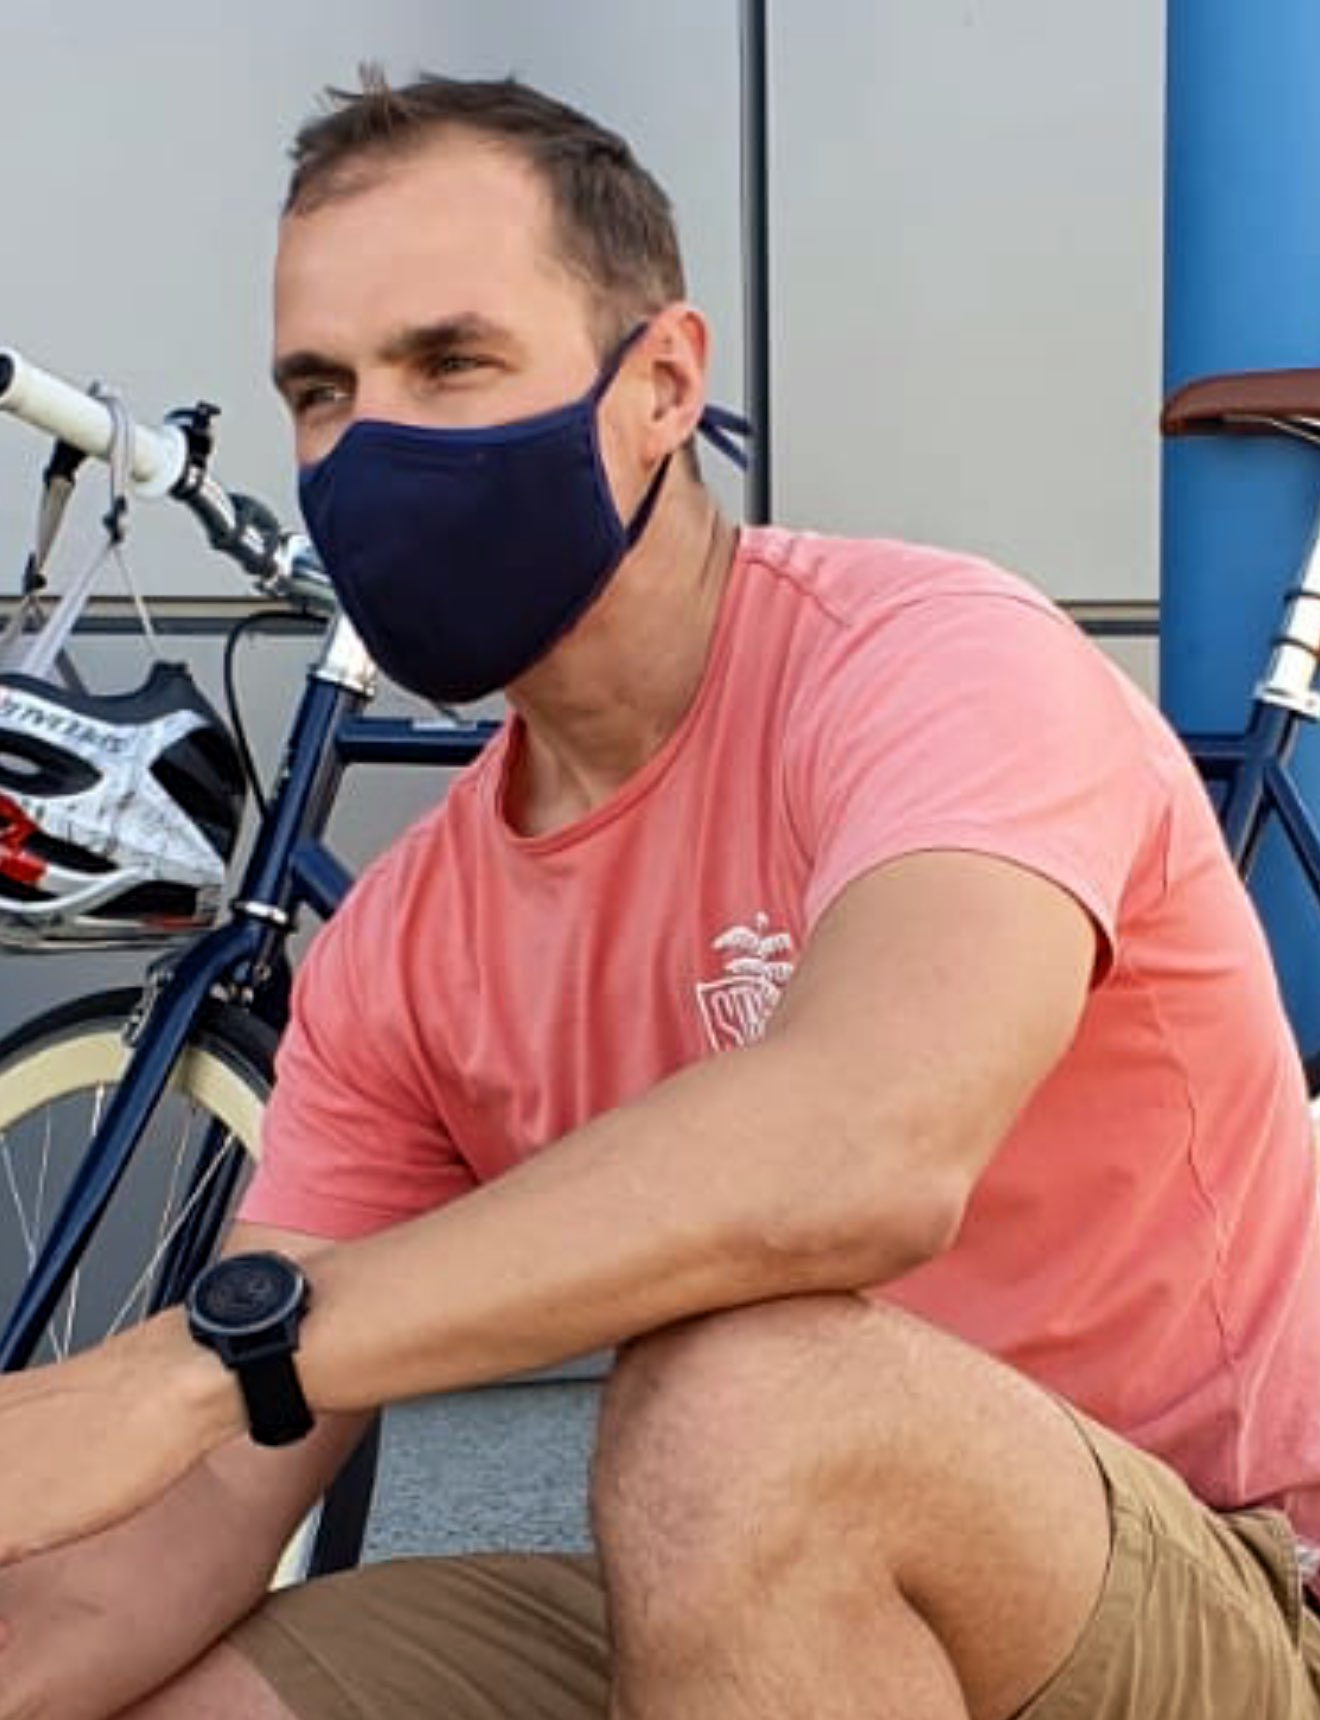 ms pomelo face mask for men in navy is great as a face covering on public transport and can also be used for cycling and gym